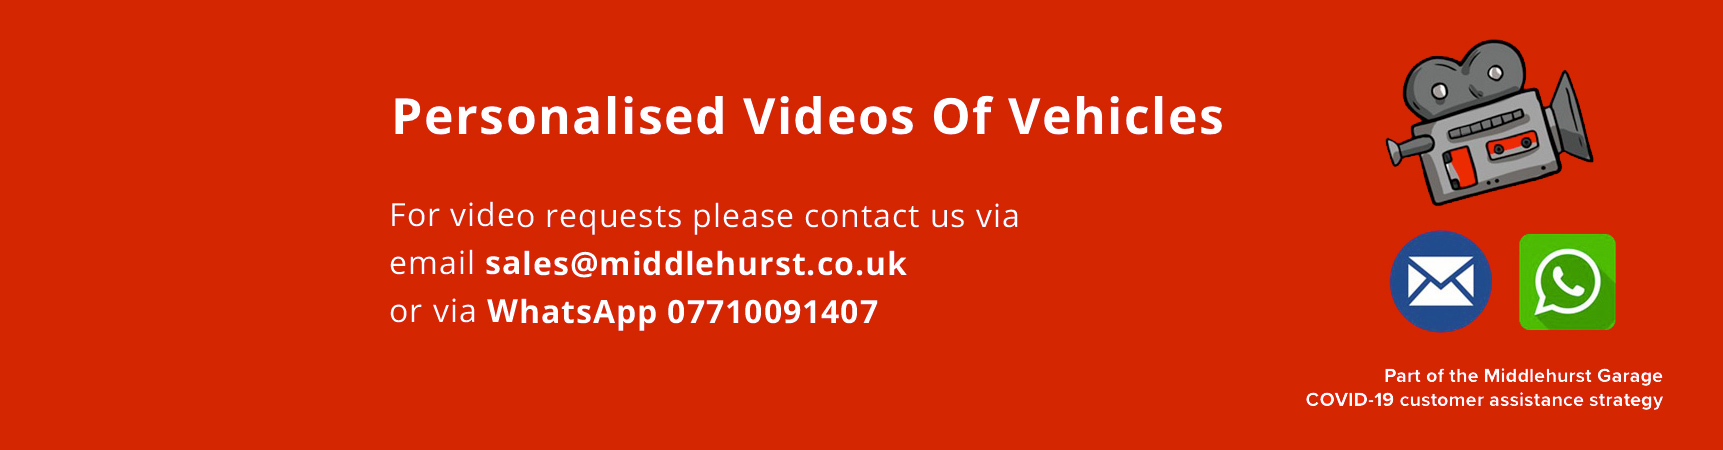 Vehicle Videos